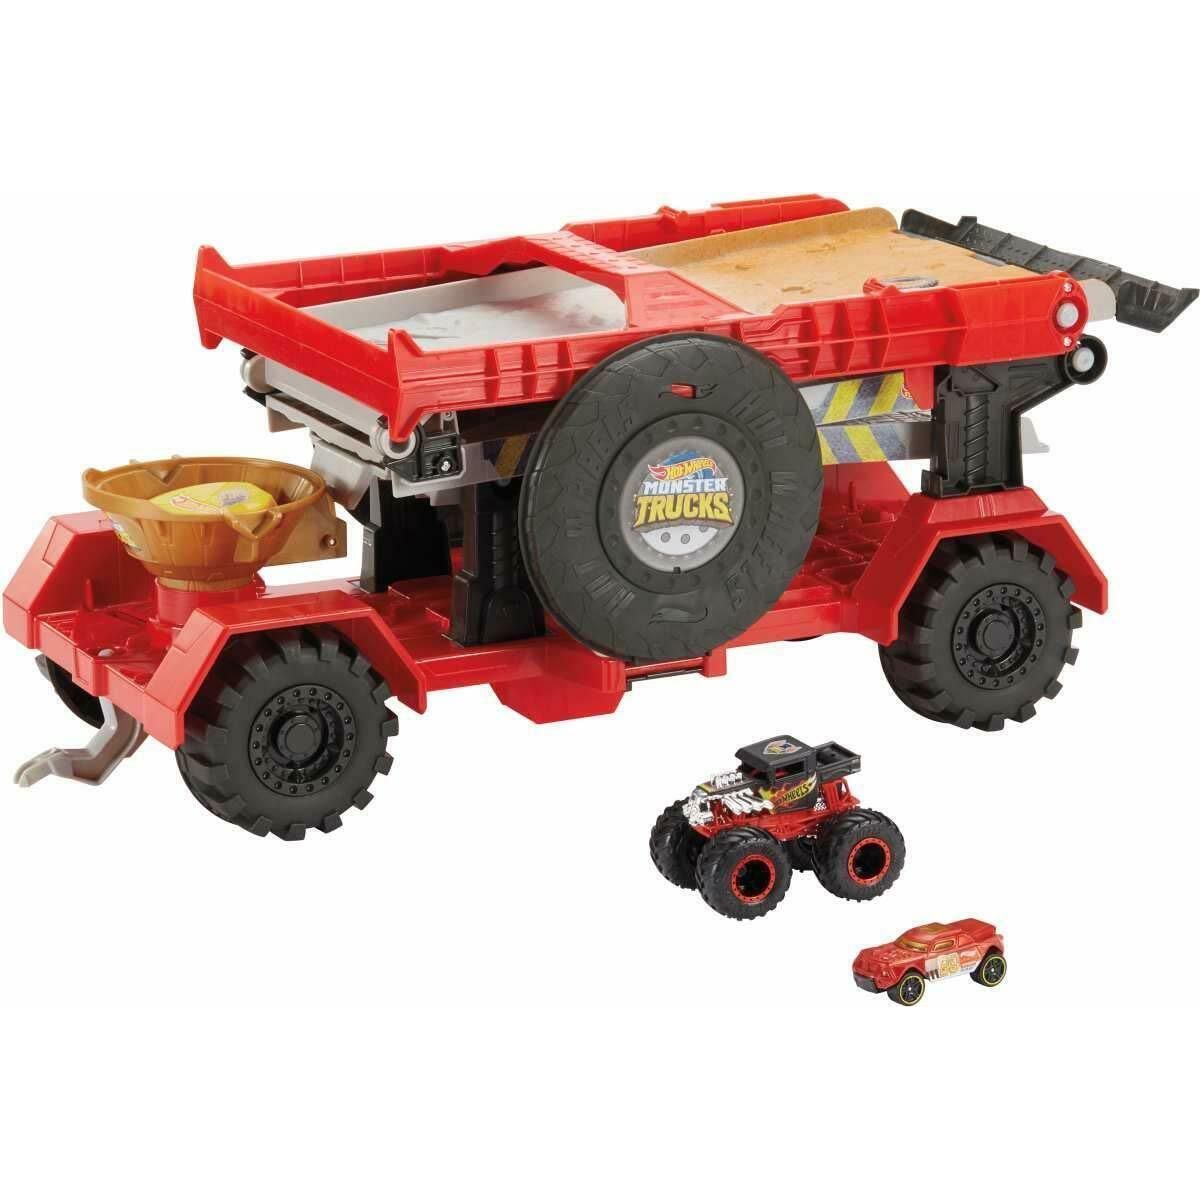 Mattel Hot Wheels Monster trucks závod z kopce 2v1